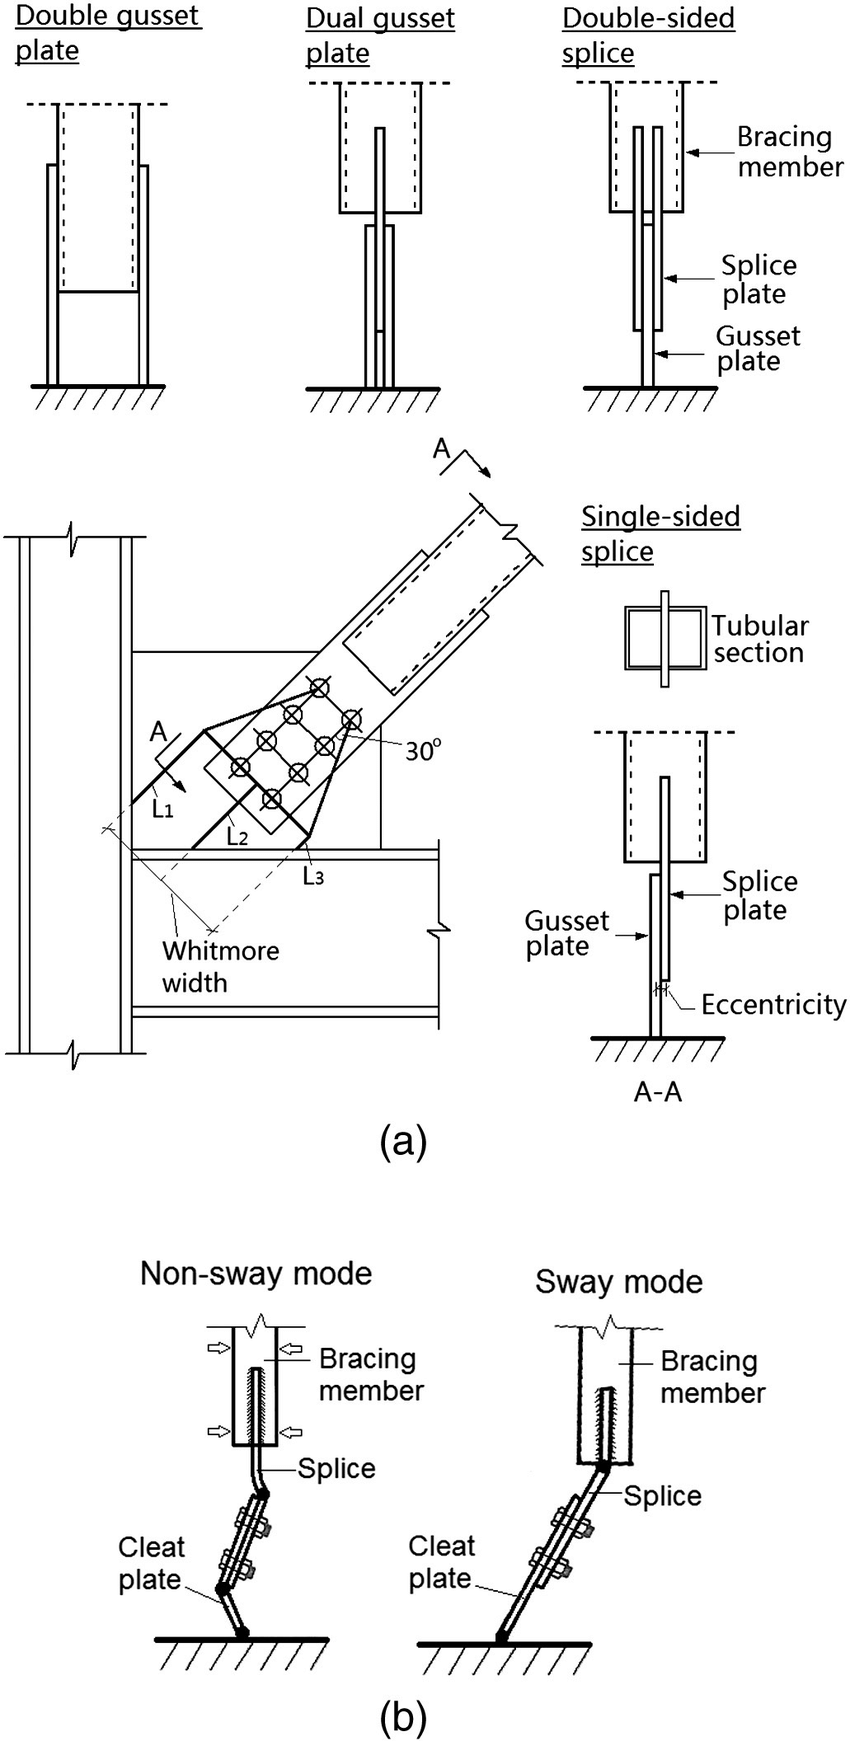 Gusset plate connections: a) common connection types, and